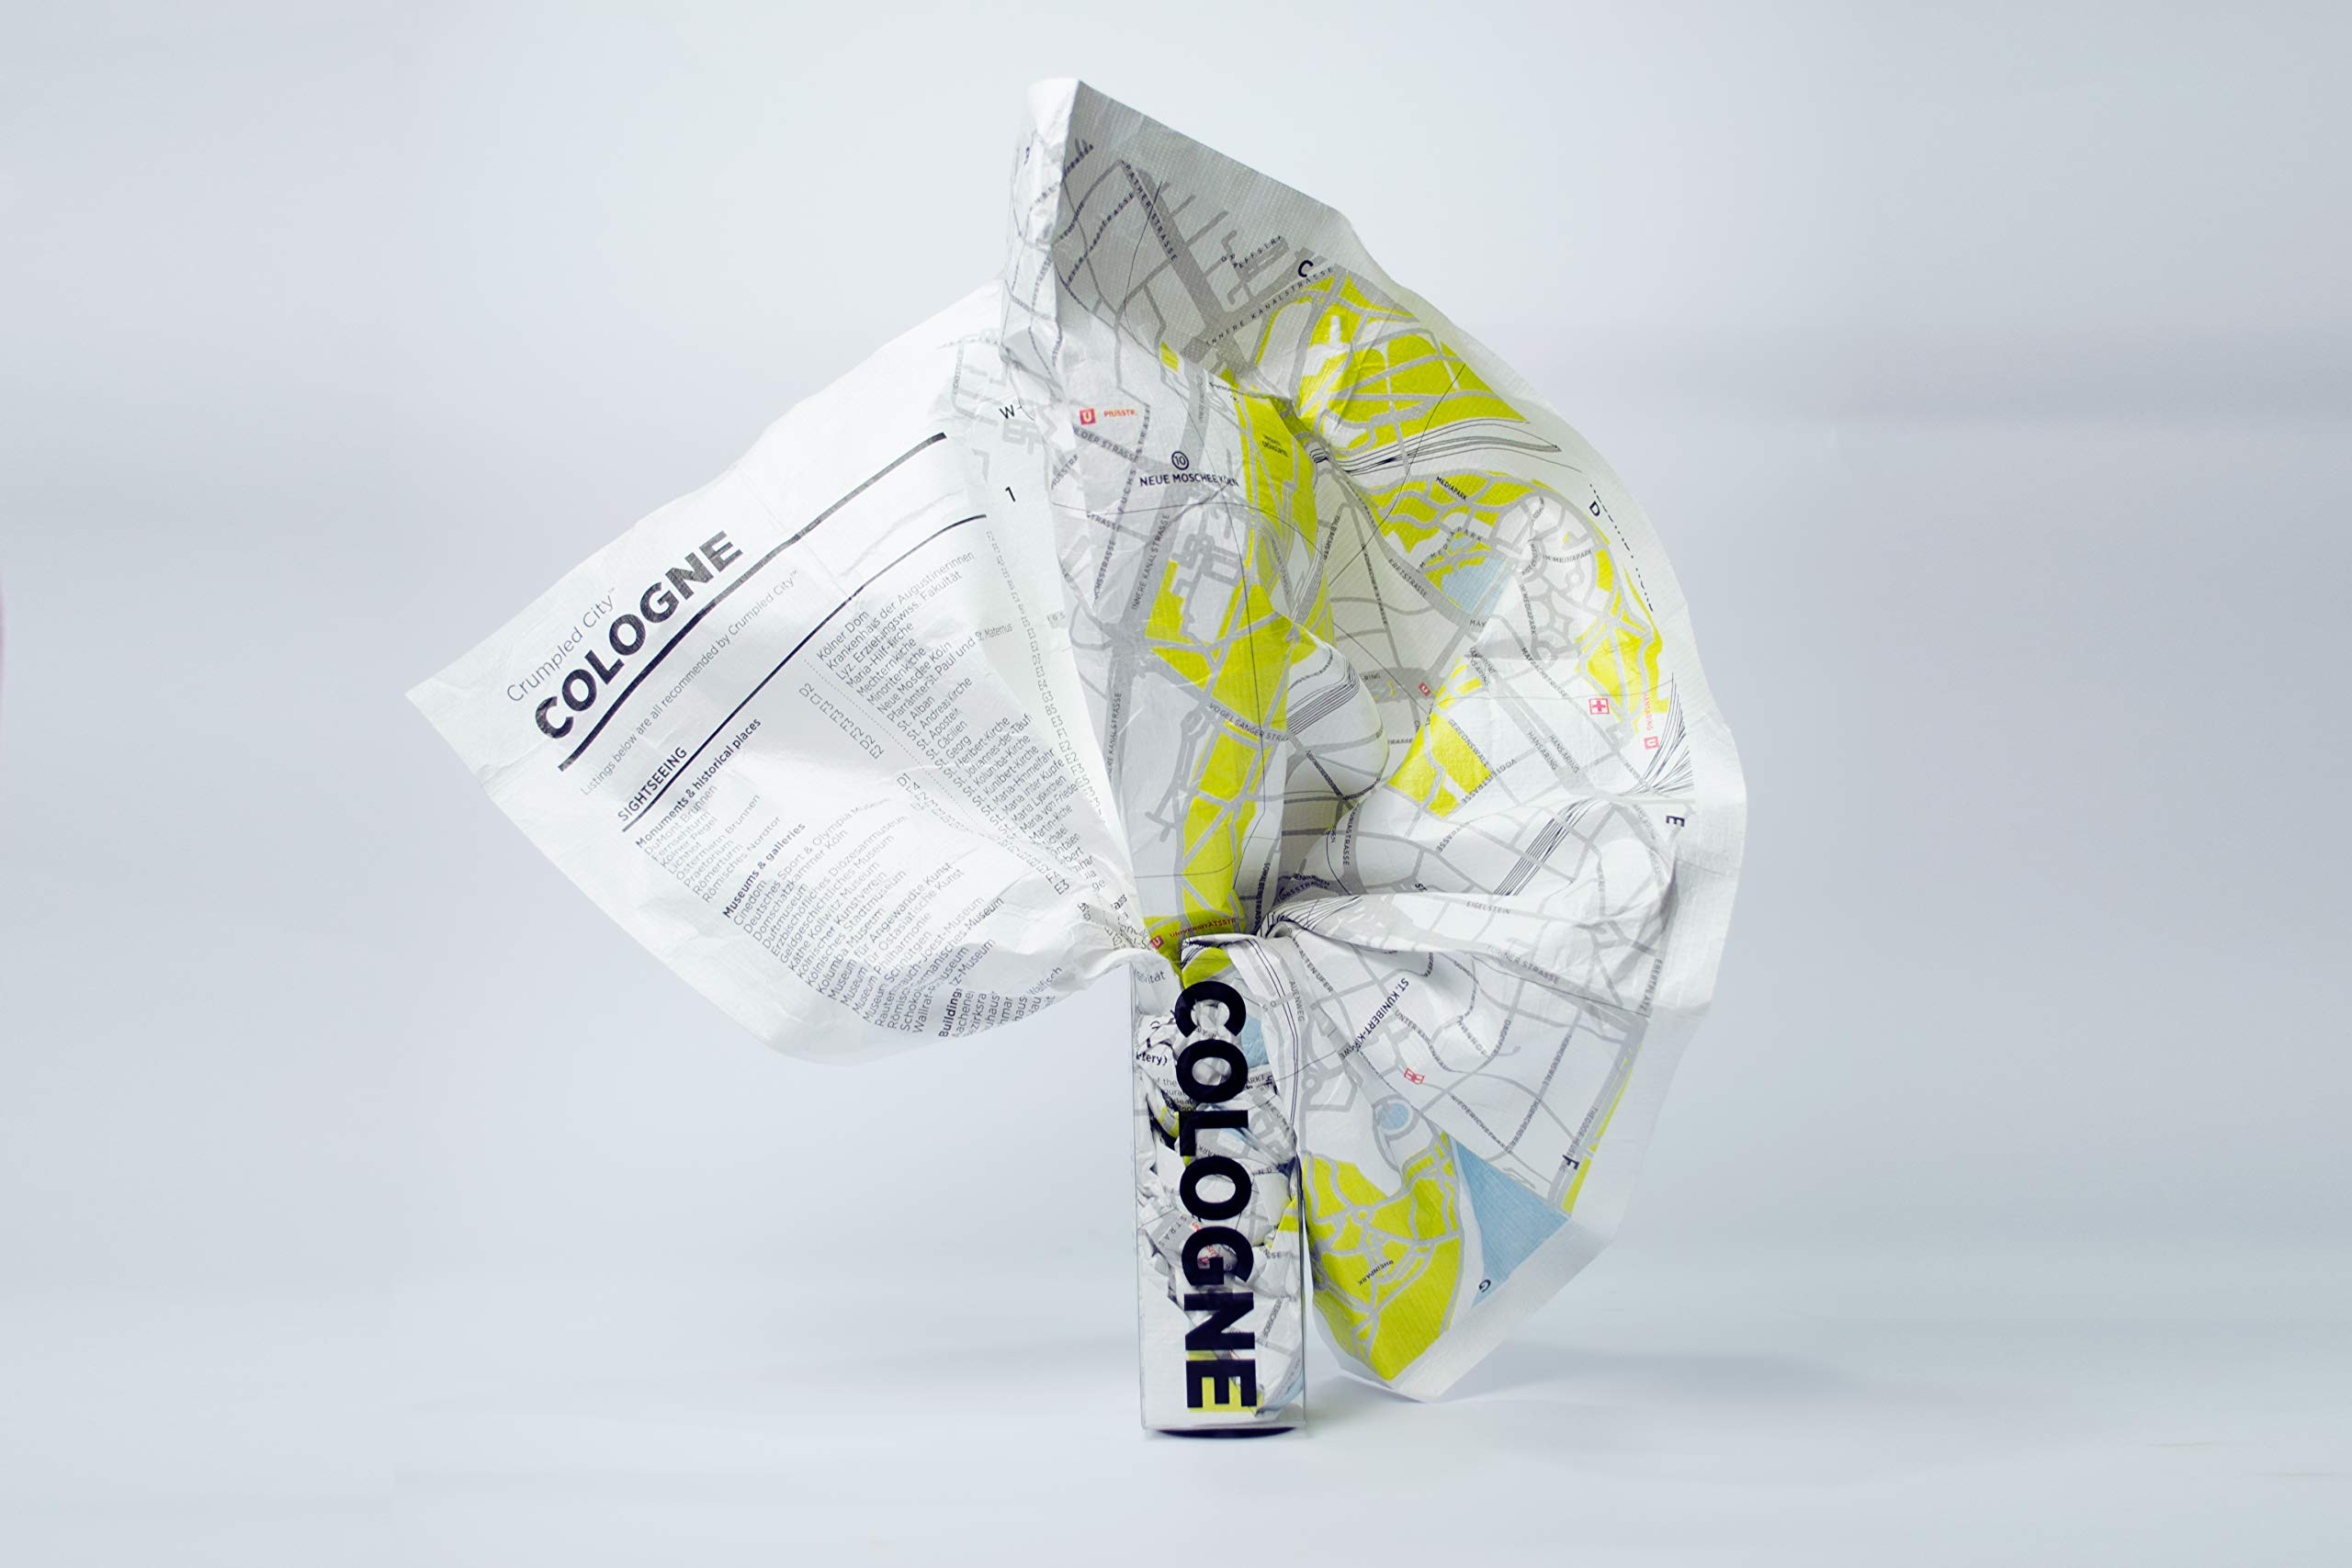 Cologne Crumpled City Map (Crumpled City Maps)